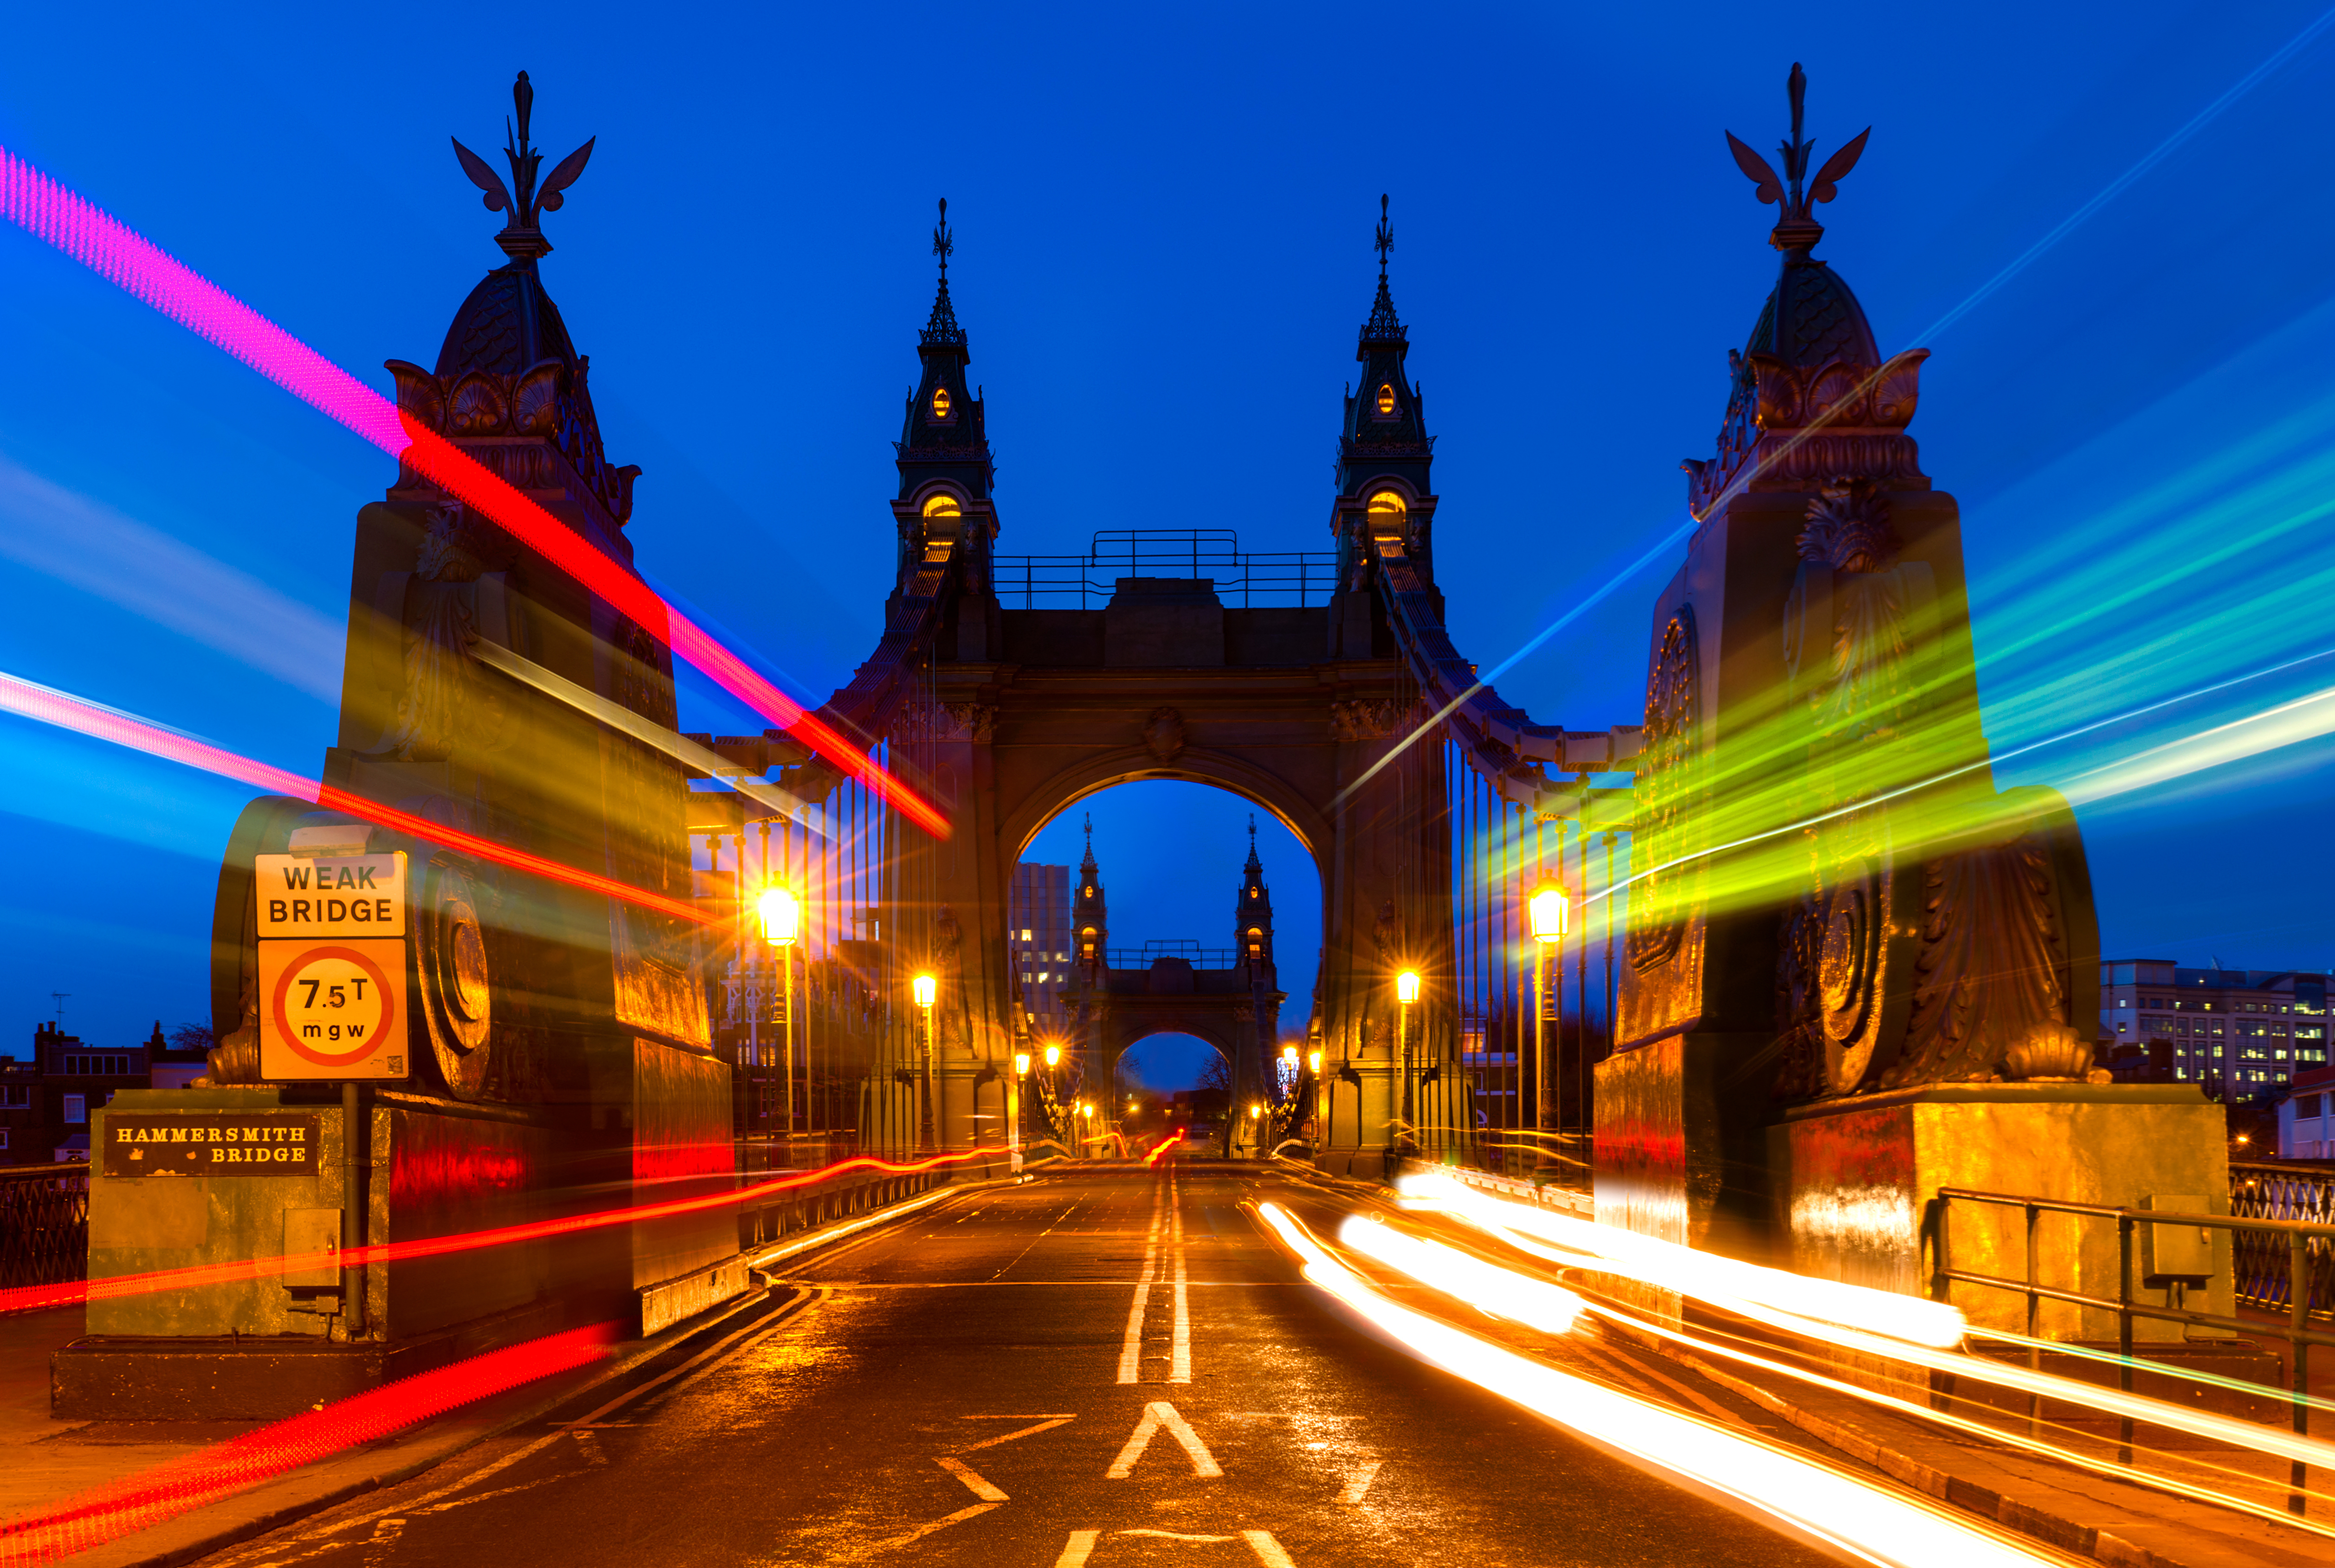 Hammersmith bridge with glowing lines and lights at night